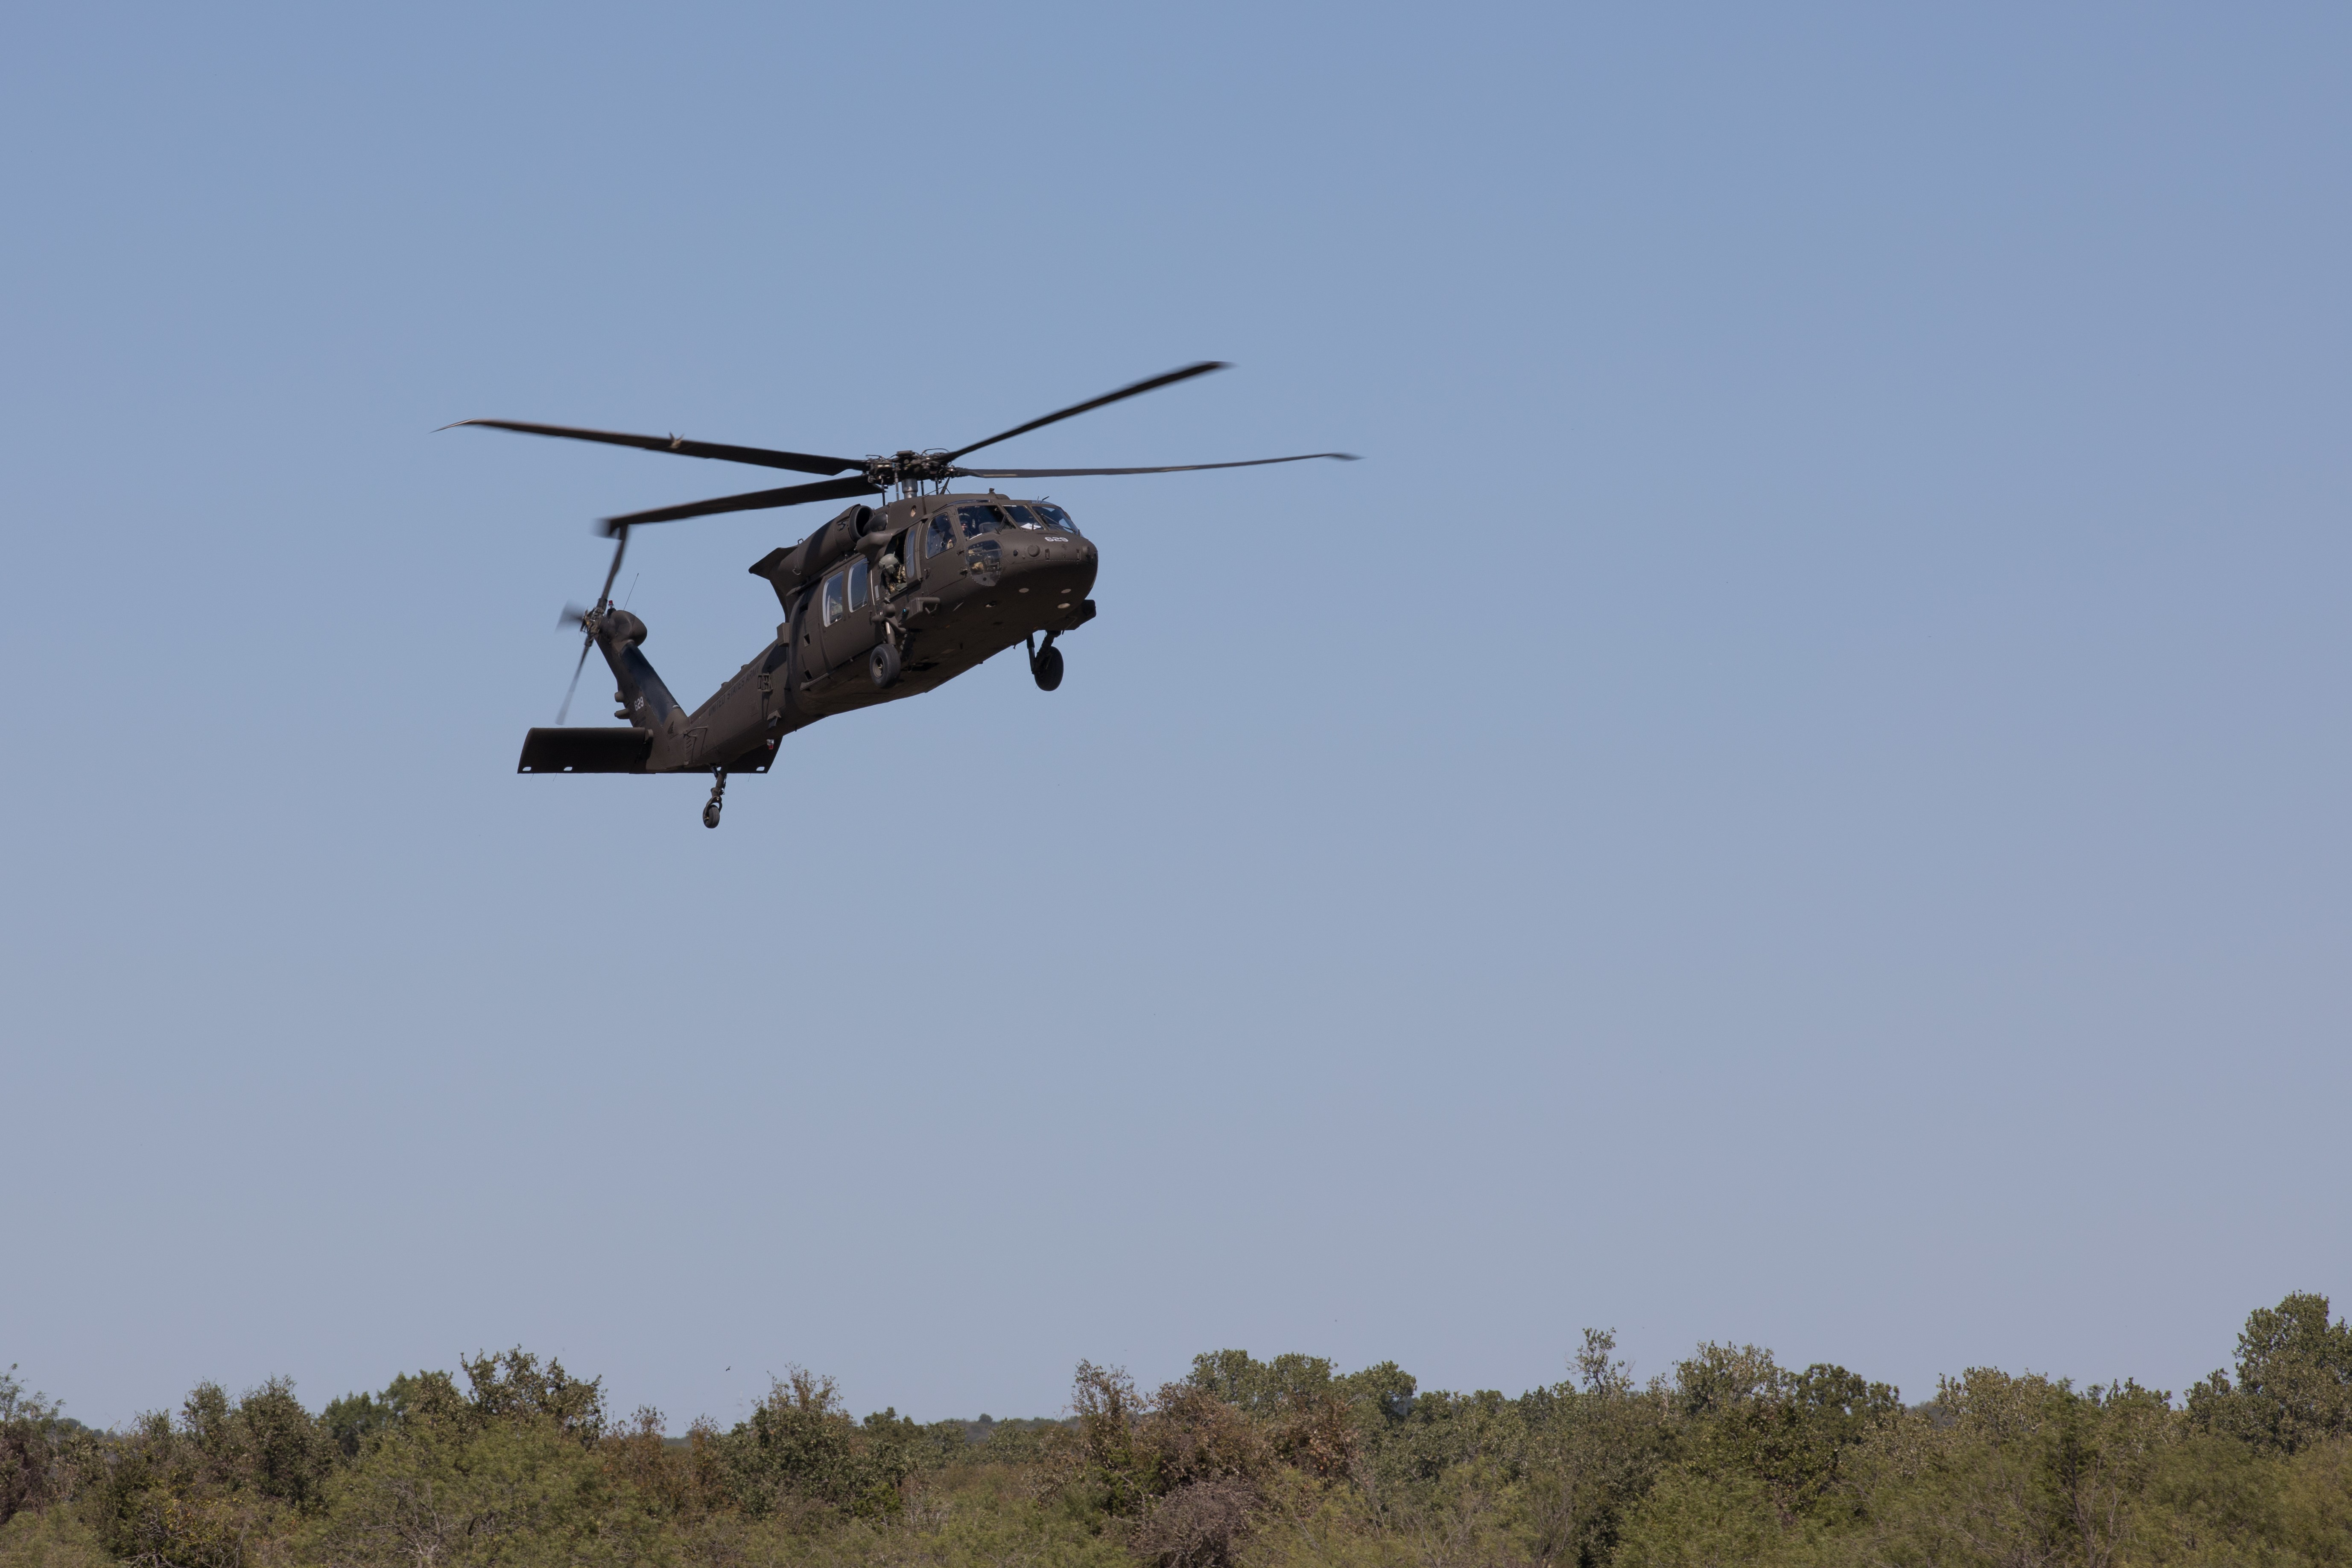 Missing Black Hawk Helicopter Has Crashed, Minnesota Guard Confirms